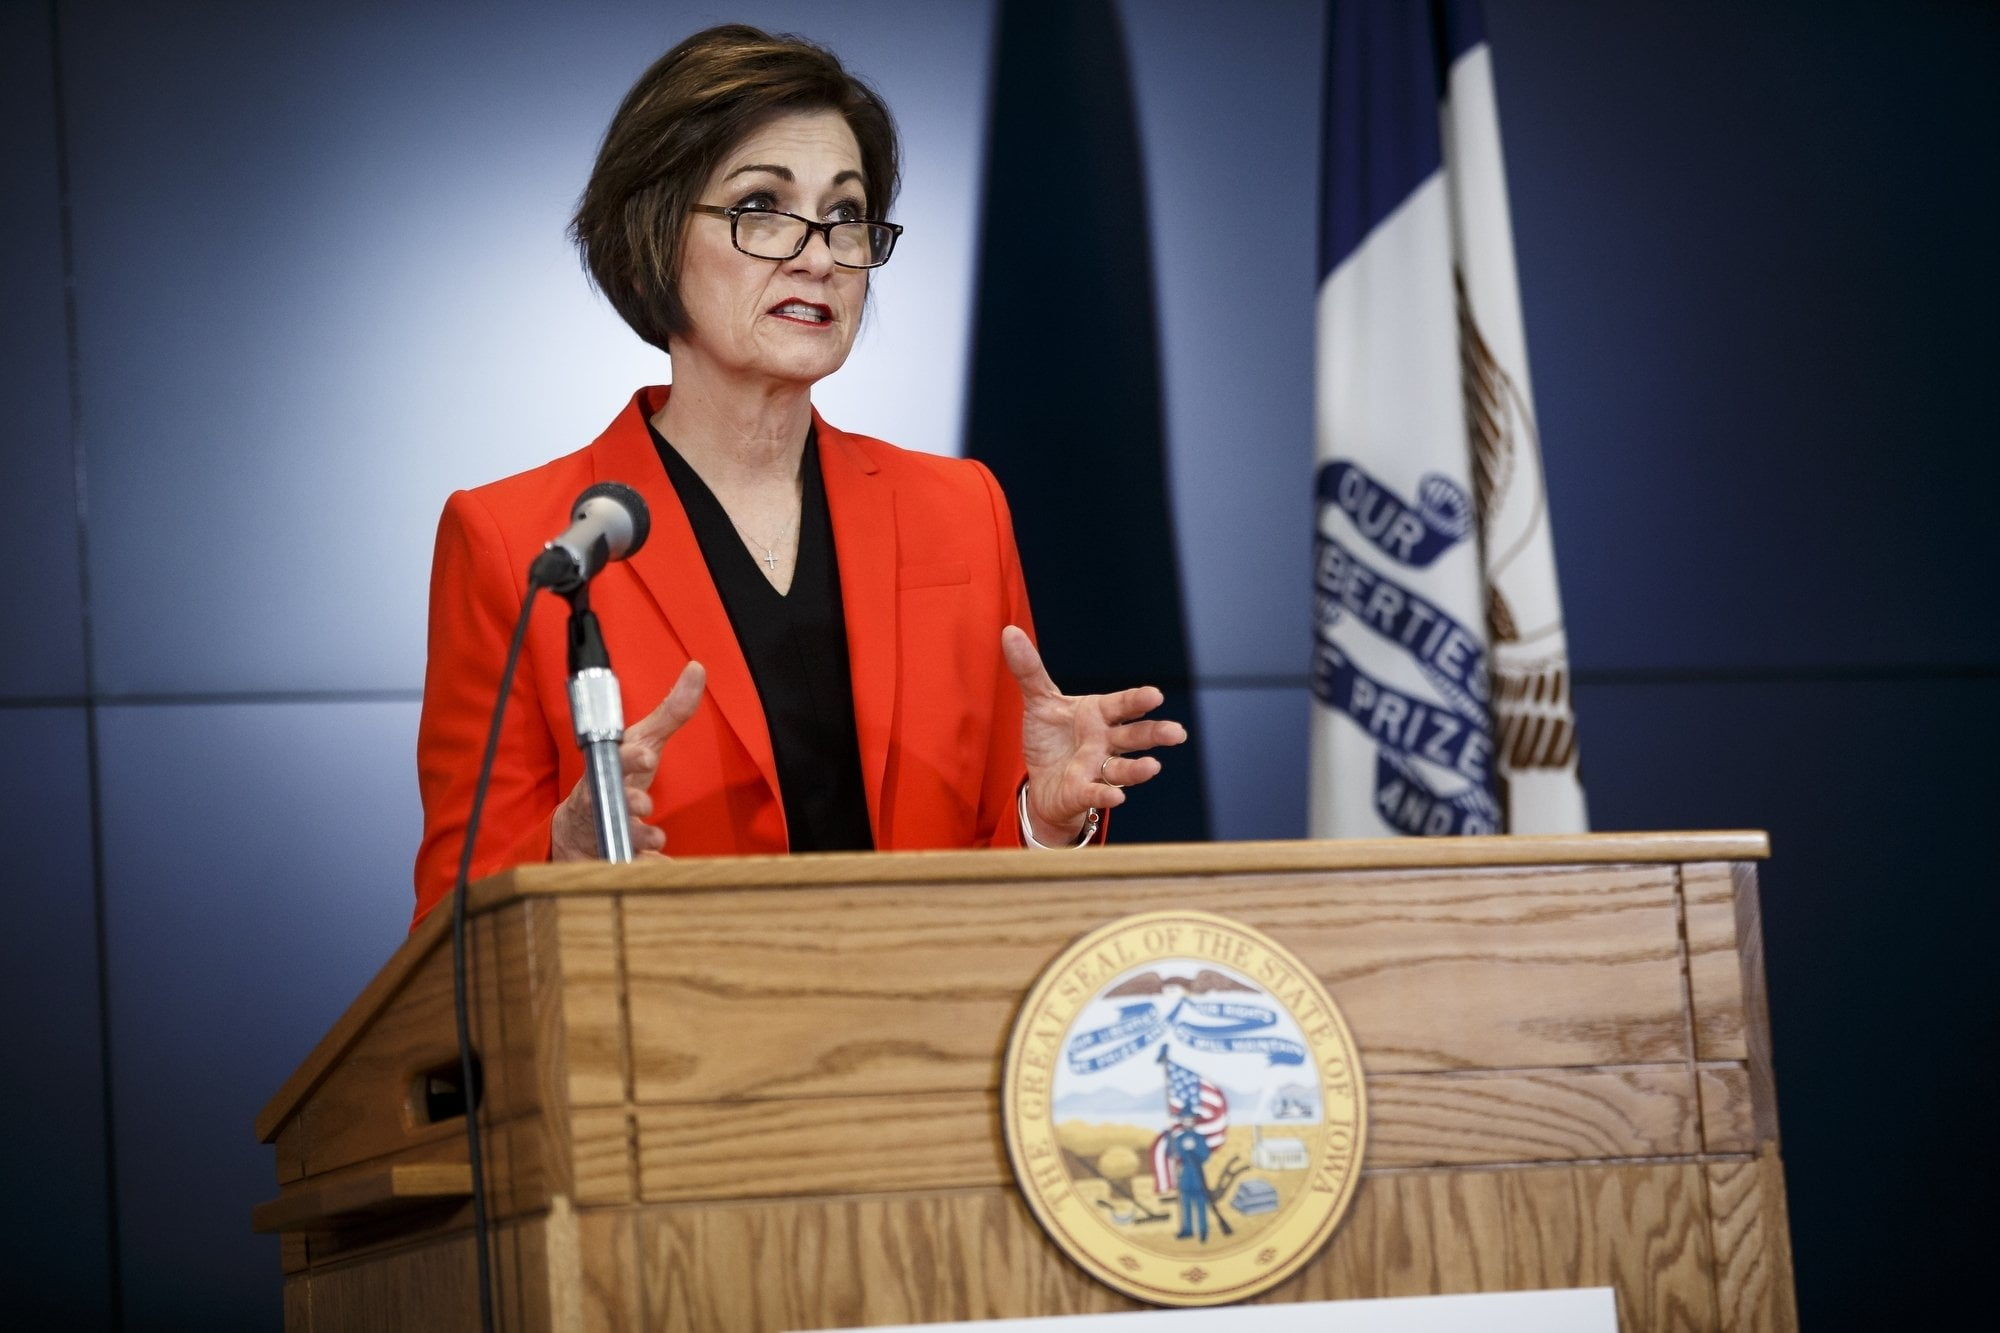 Researchers Warned Iowa Governor Not to Relax Virus Limits 14